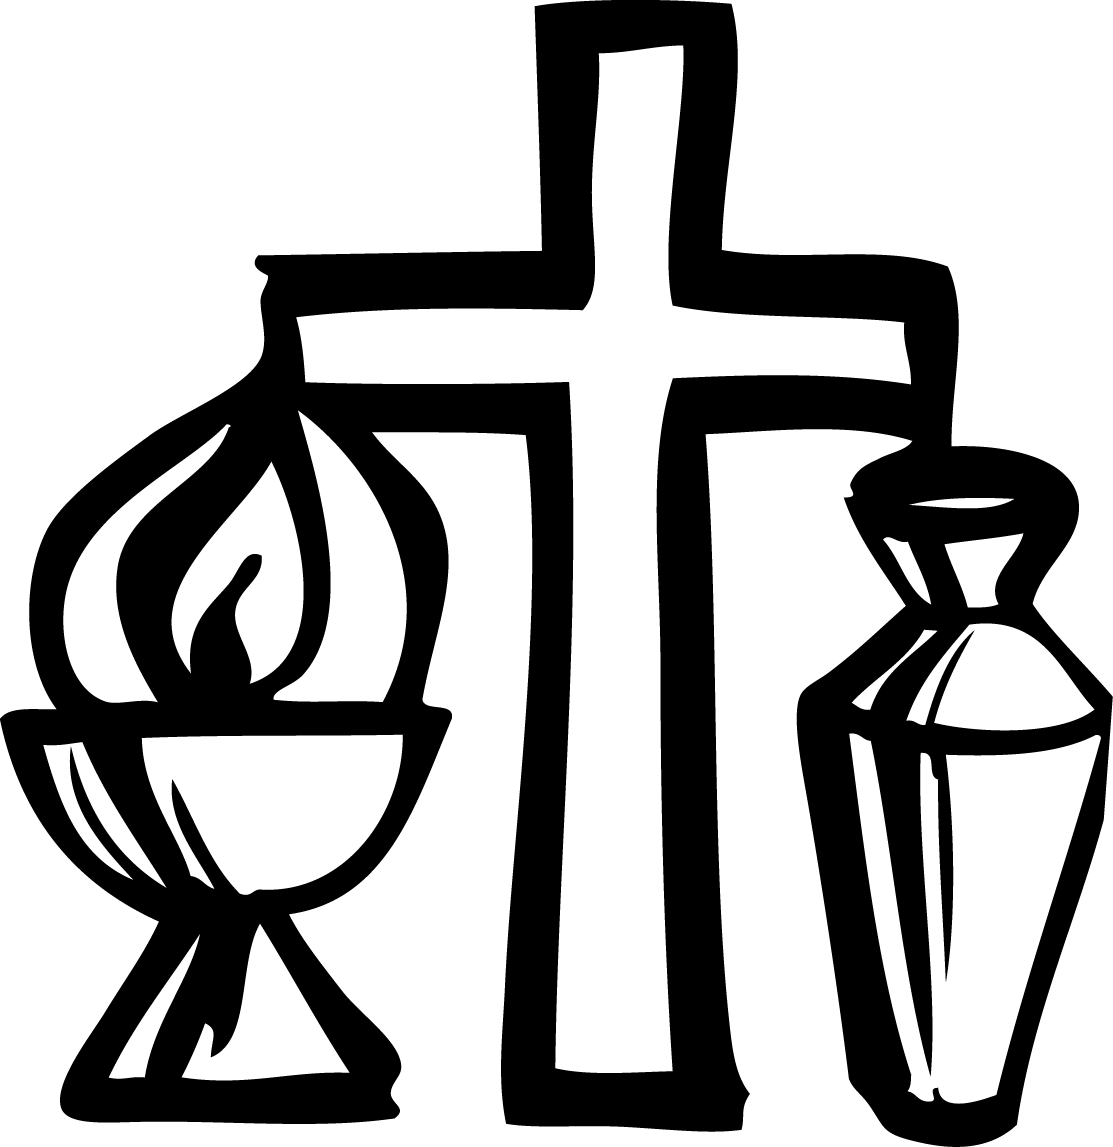 Baptism cross clipart black and white jpg black and white download Holy anointing oil Chrism Mass Baptism Clip art - baptism 1113*1147 ... jpg black and white download